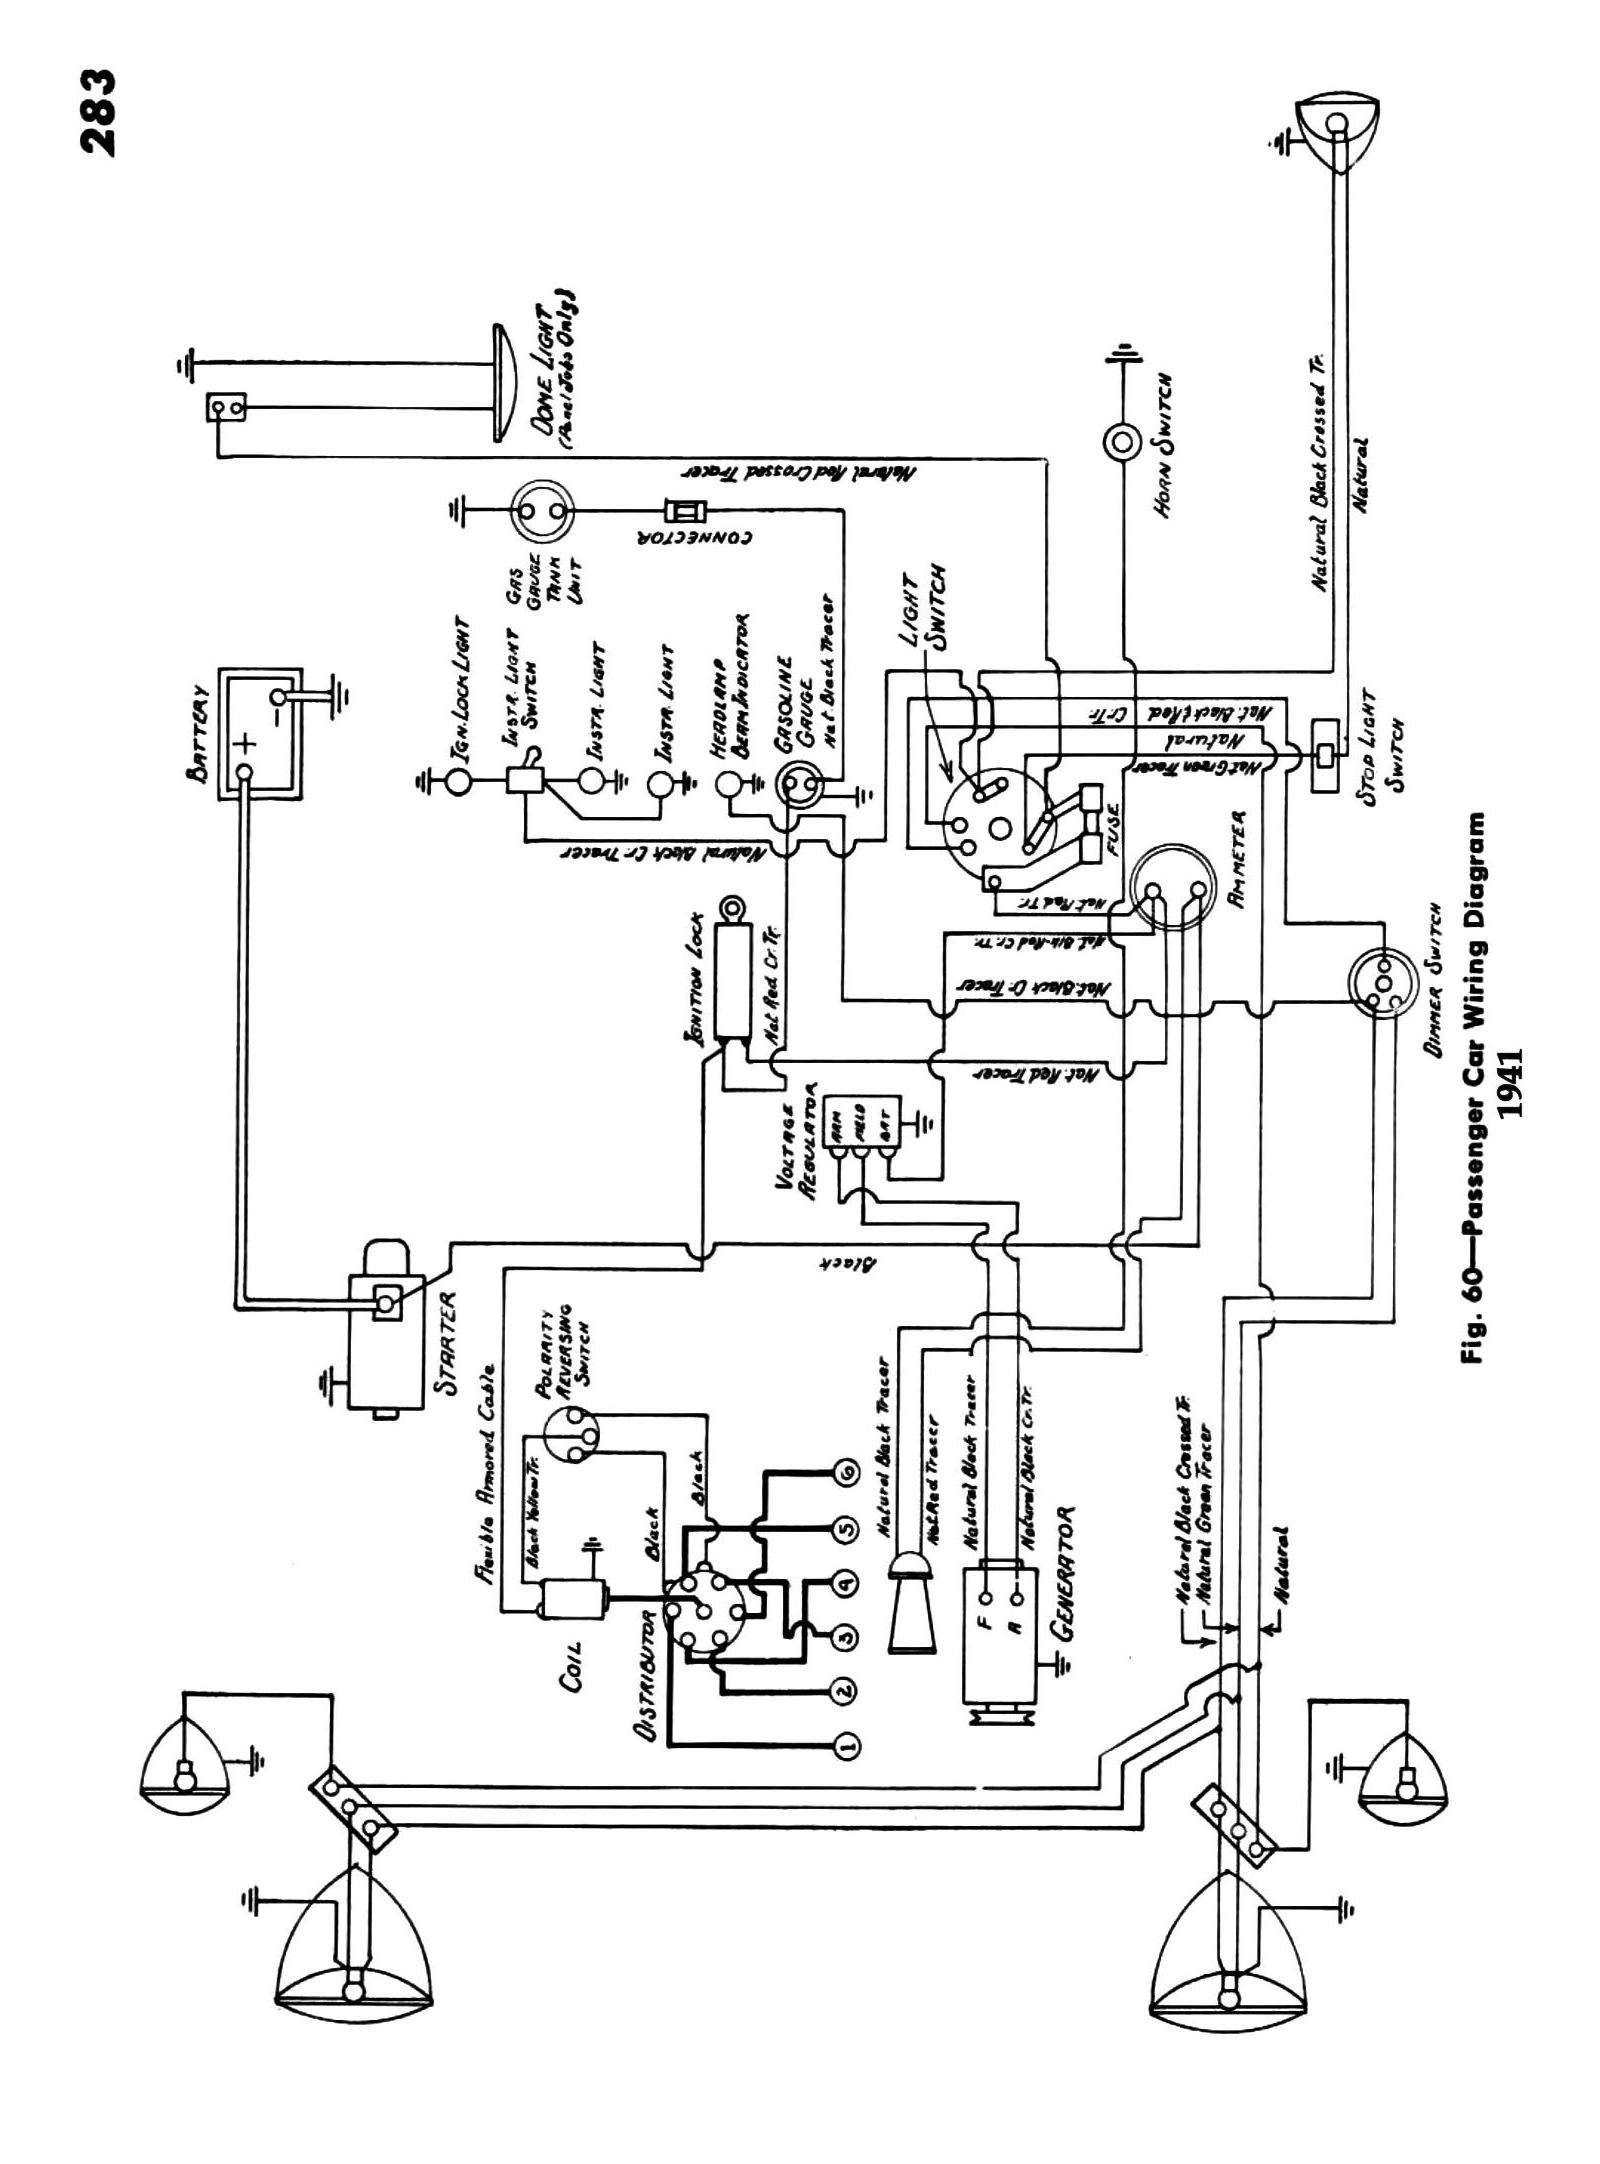 hight resolution of chevy wiring diagrams 1958 gmc truck wiring diagram 1941 passenger car wiring